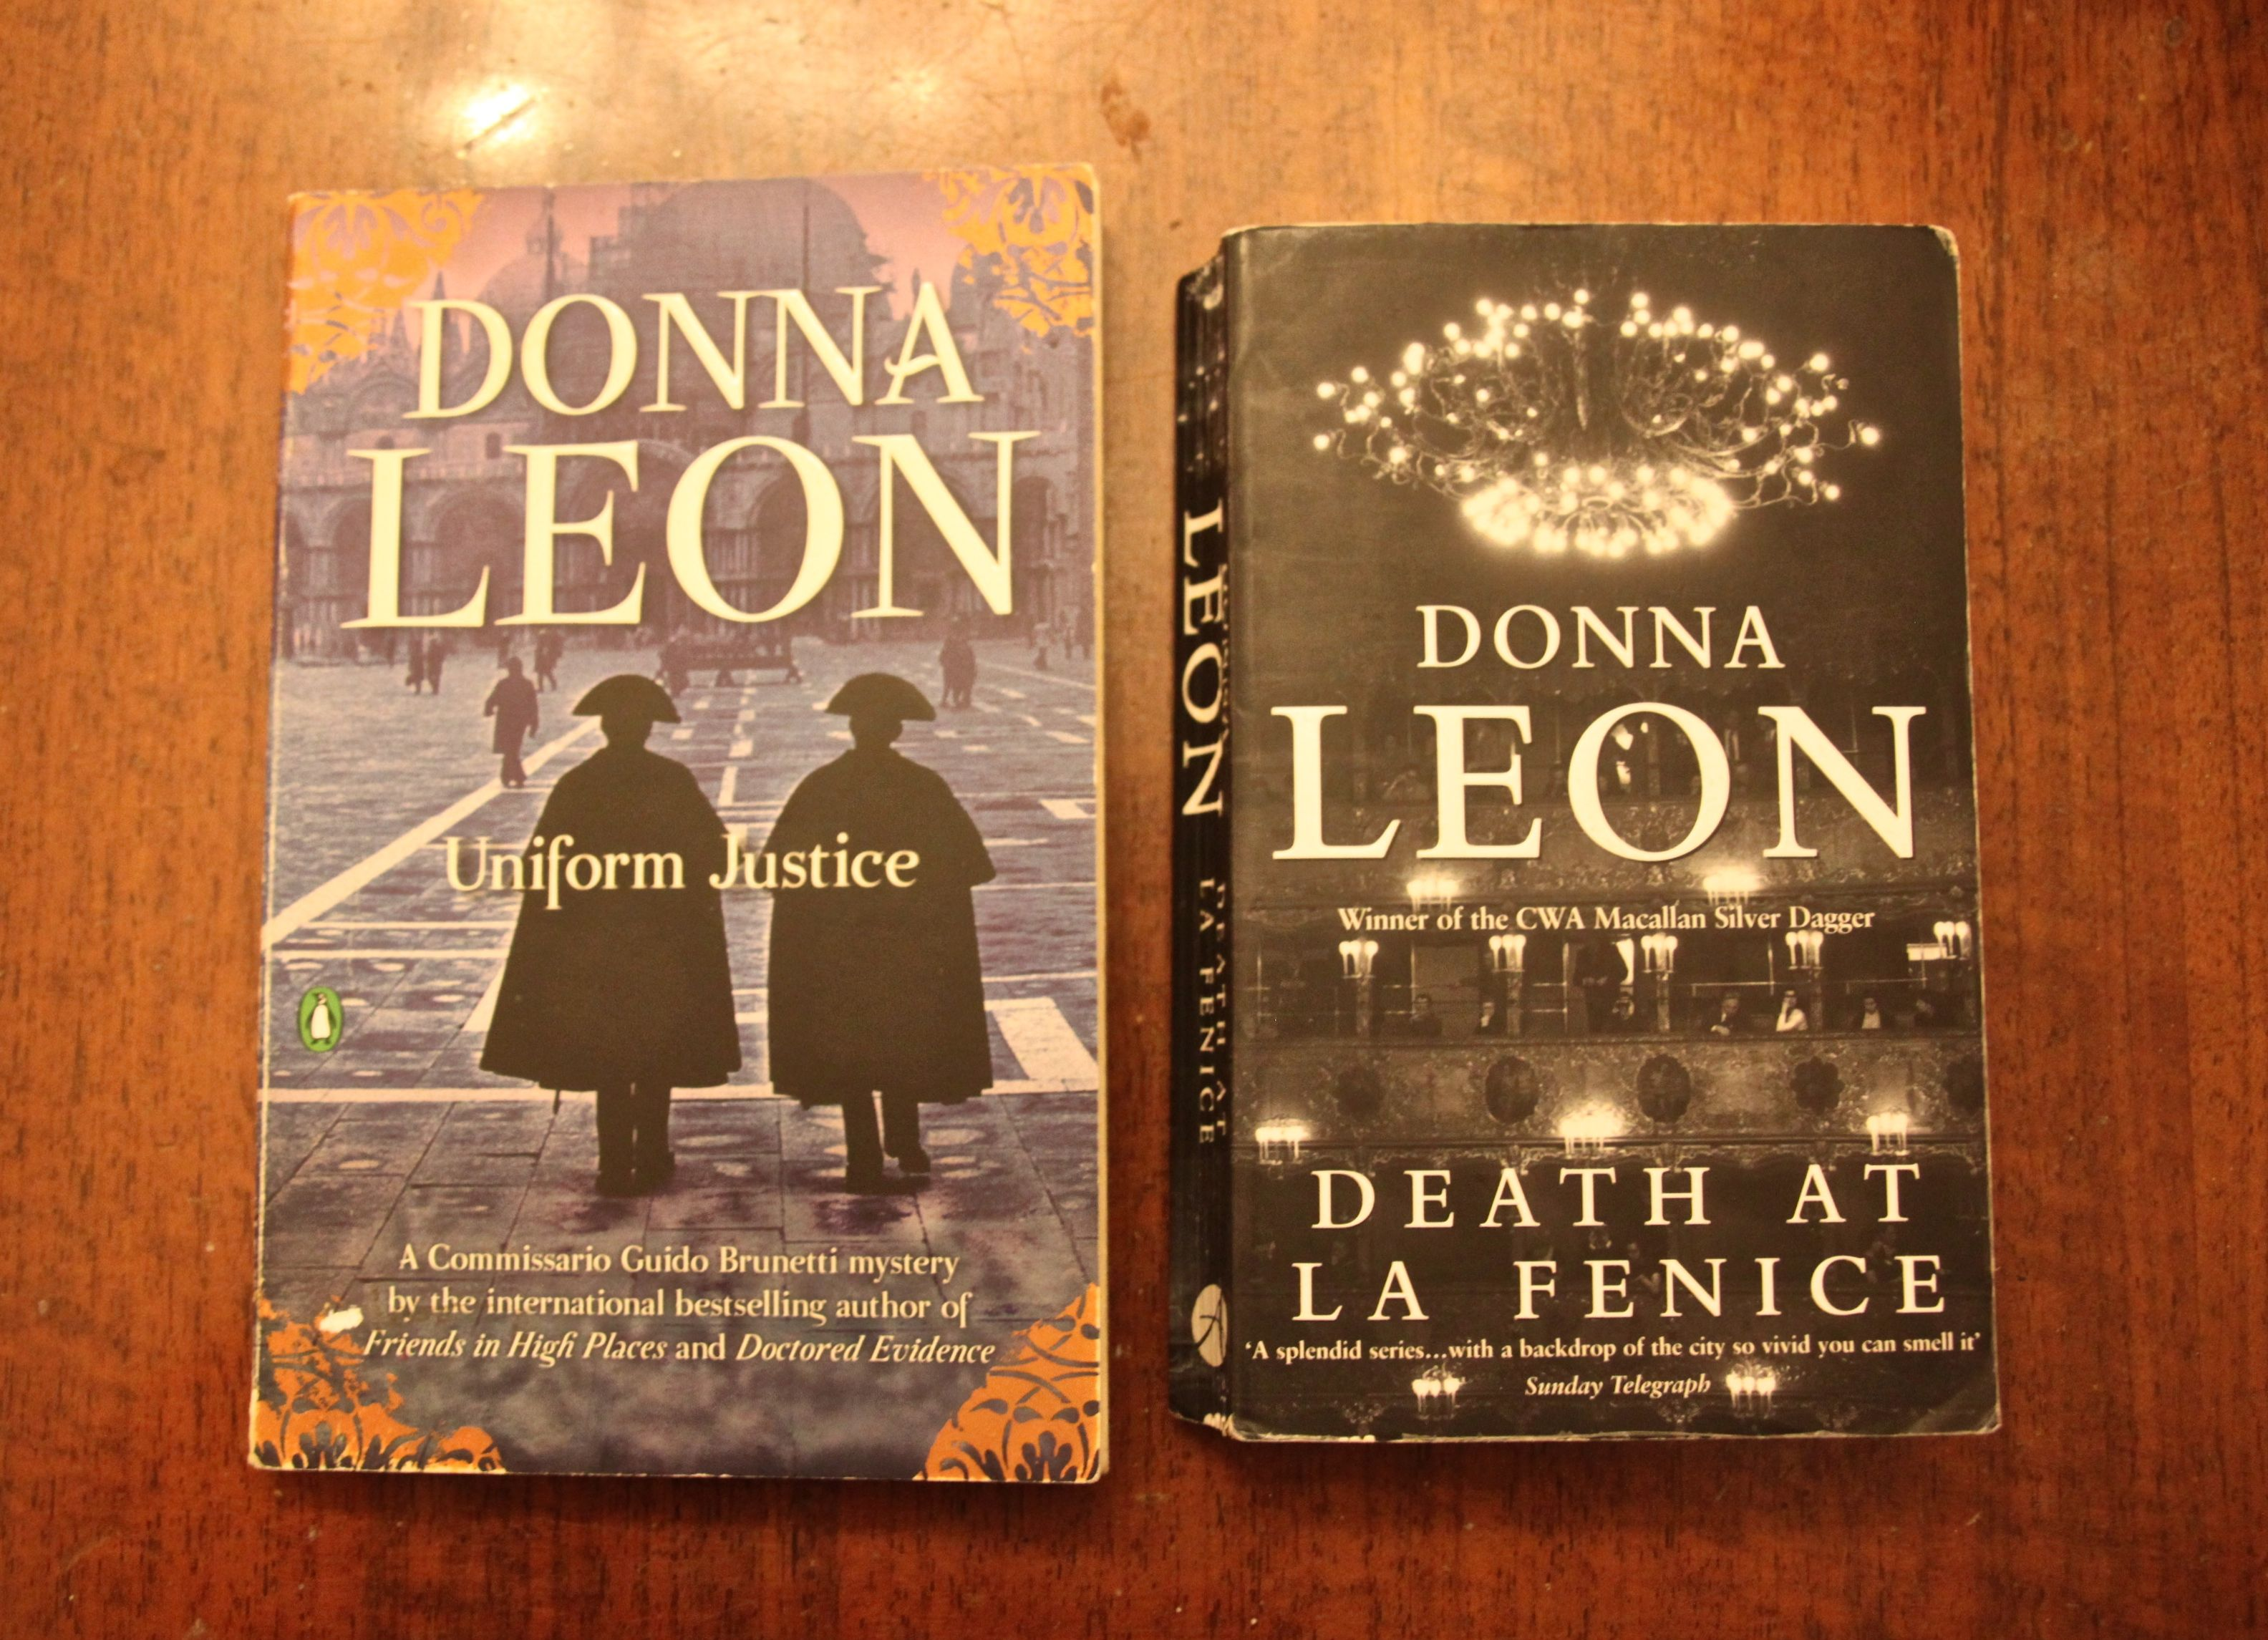 Donna Leon conjures up the criminal side of Venice